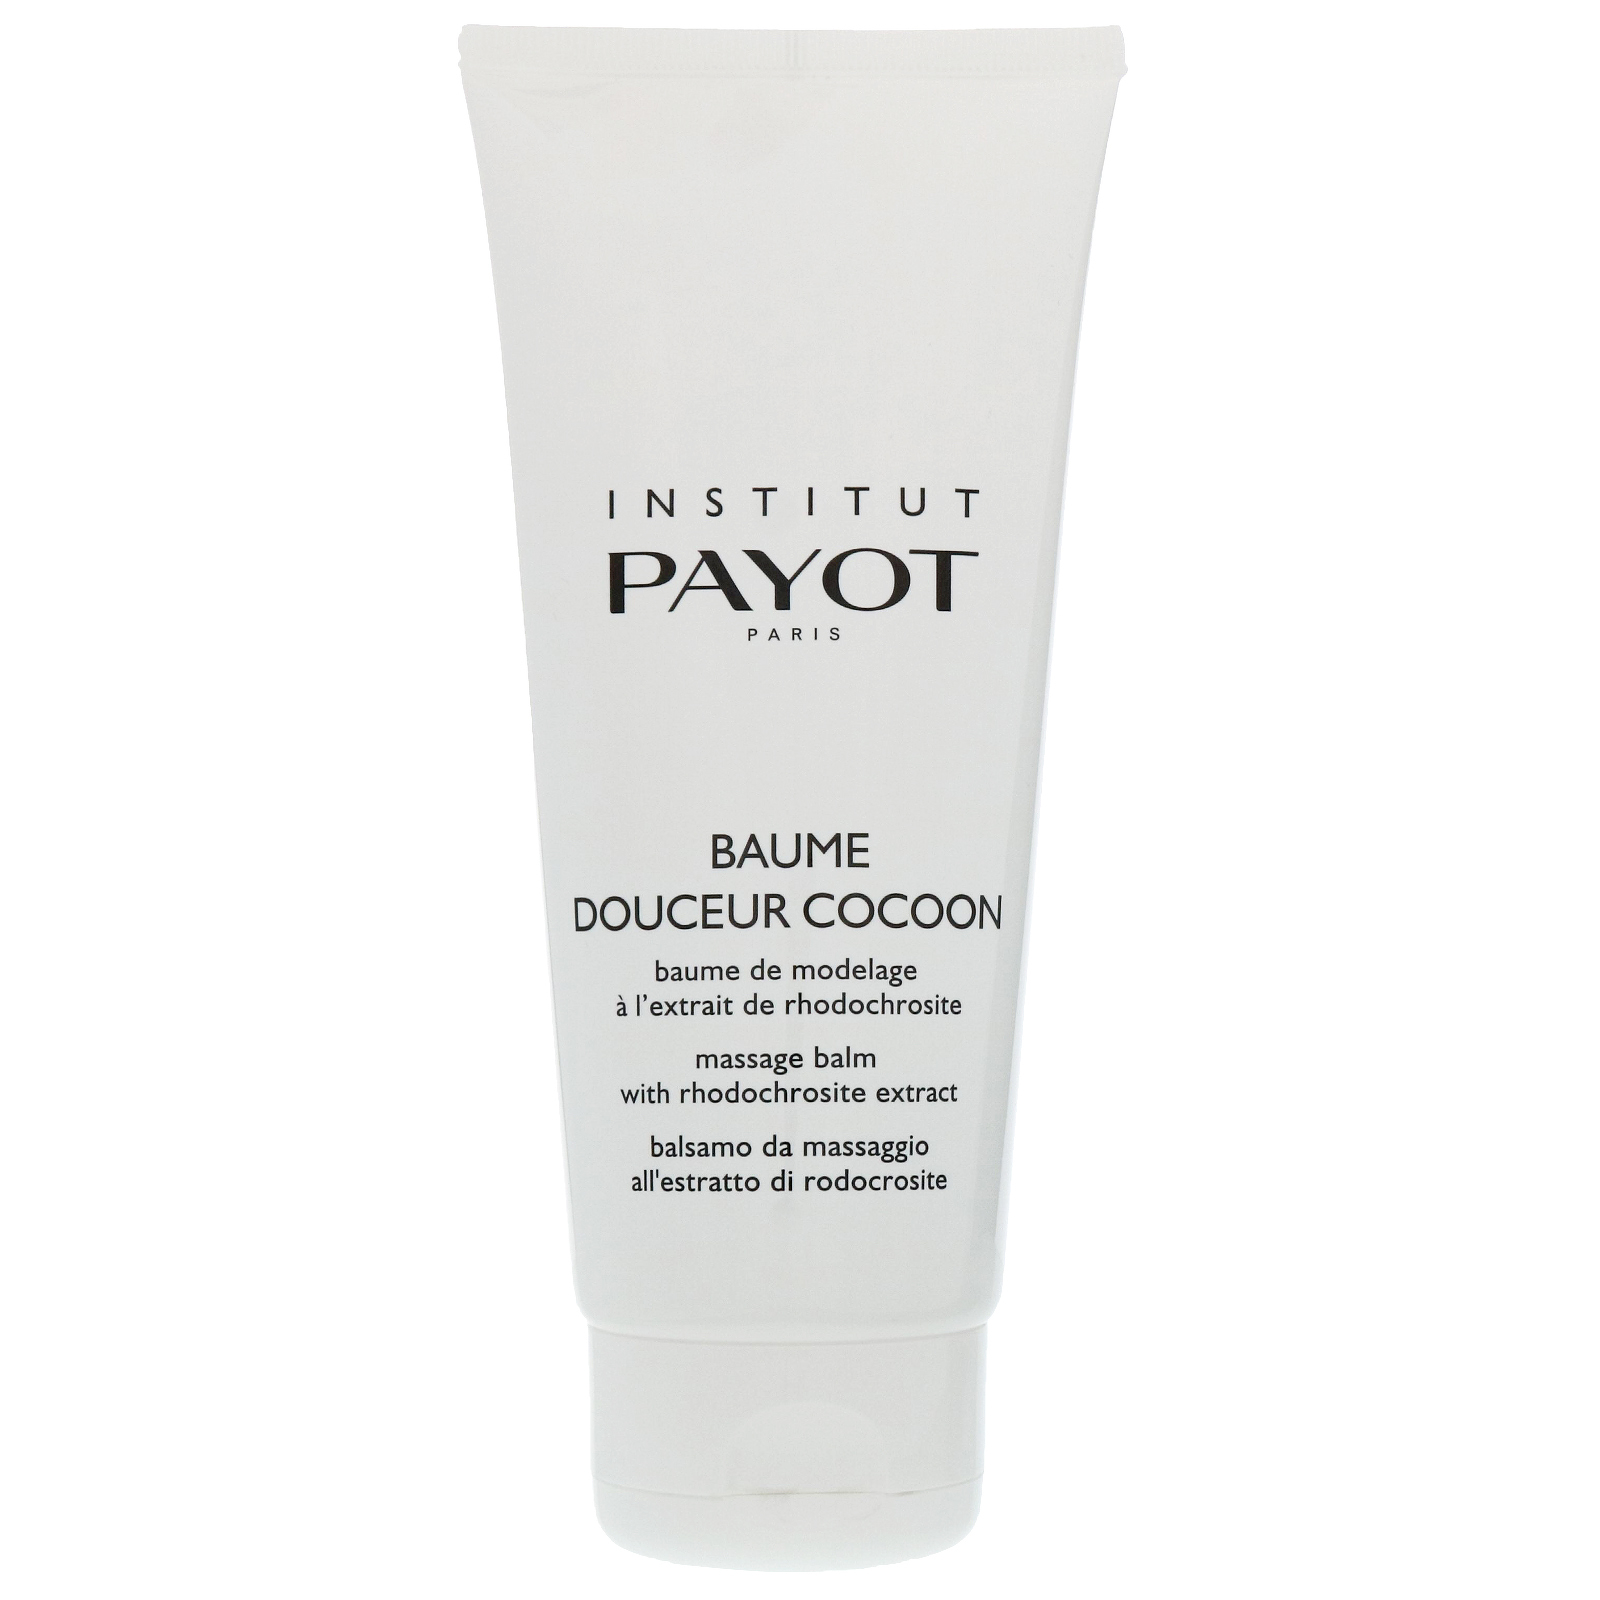 Payot Paris Body Baume Douceur Cocoon: Massage Balm 200ml